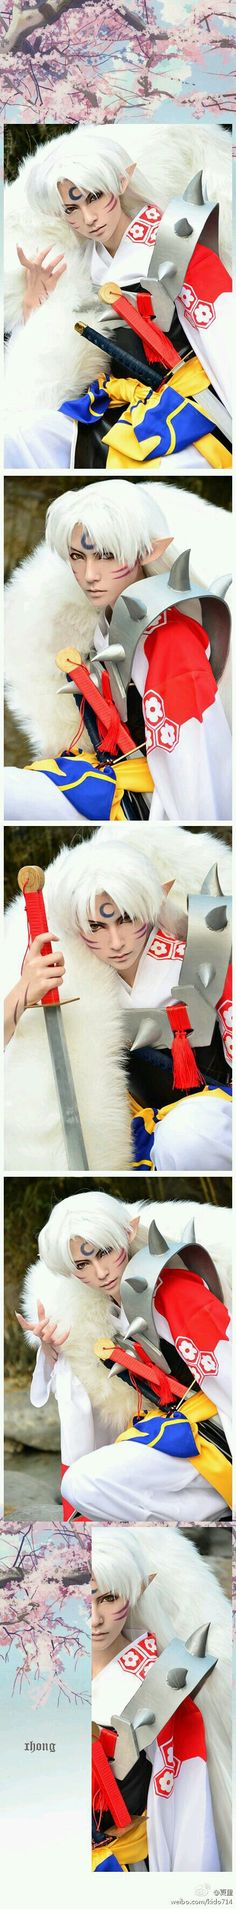 Lord Sesshomaru cosplay from the tv show Inuyasha.